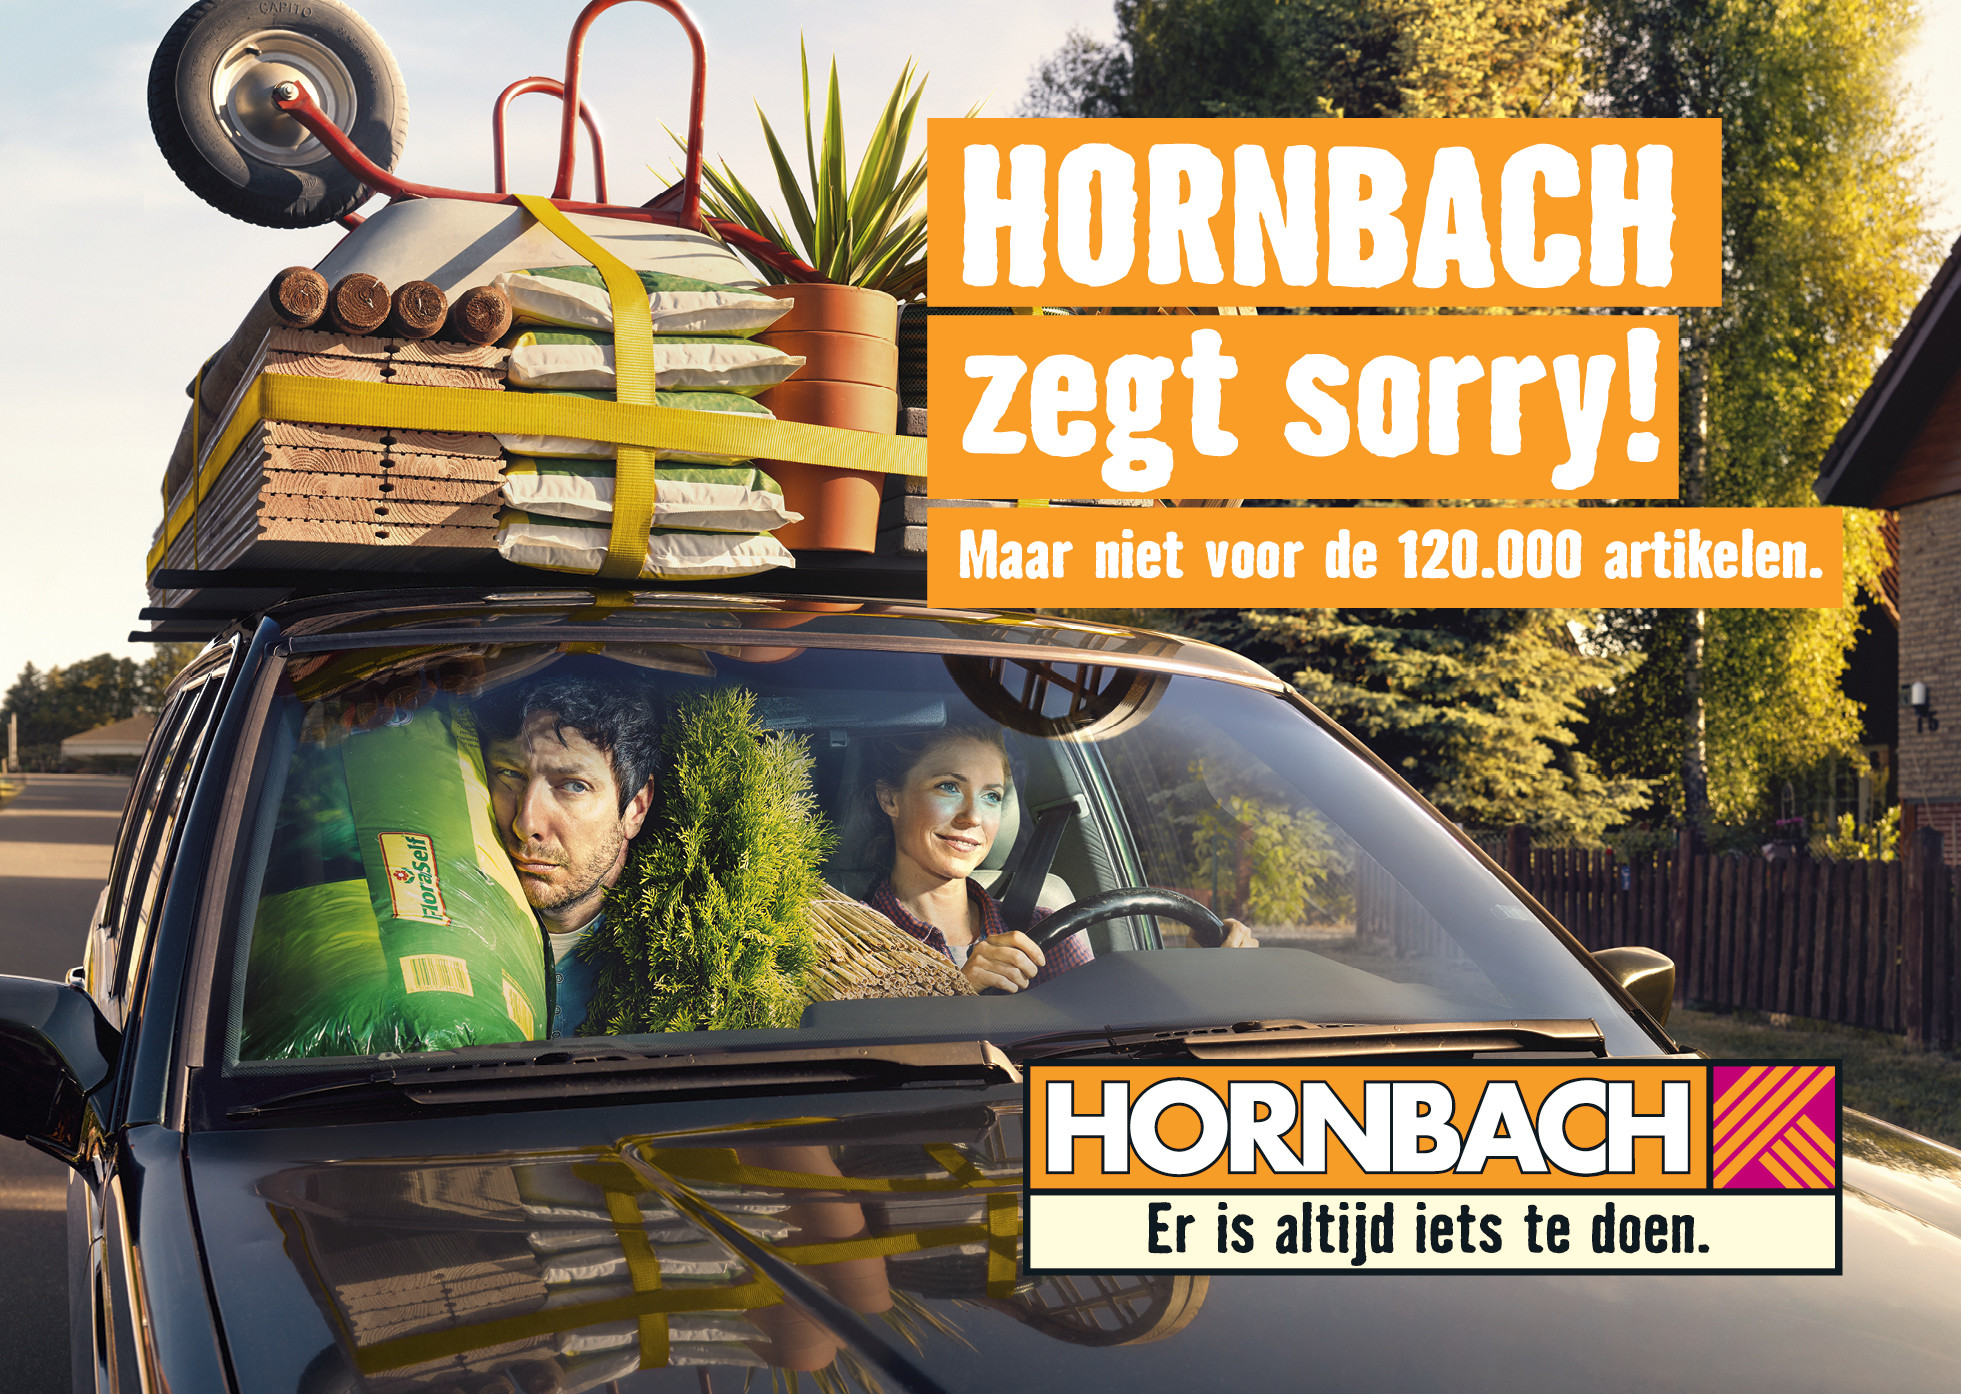 hornbach advertentie